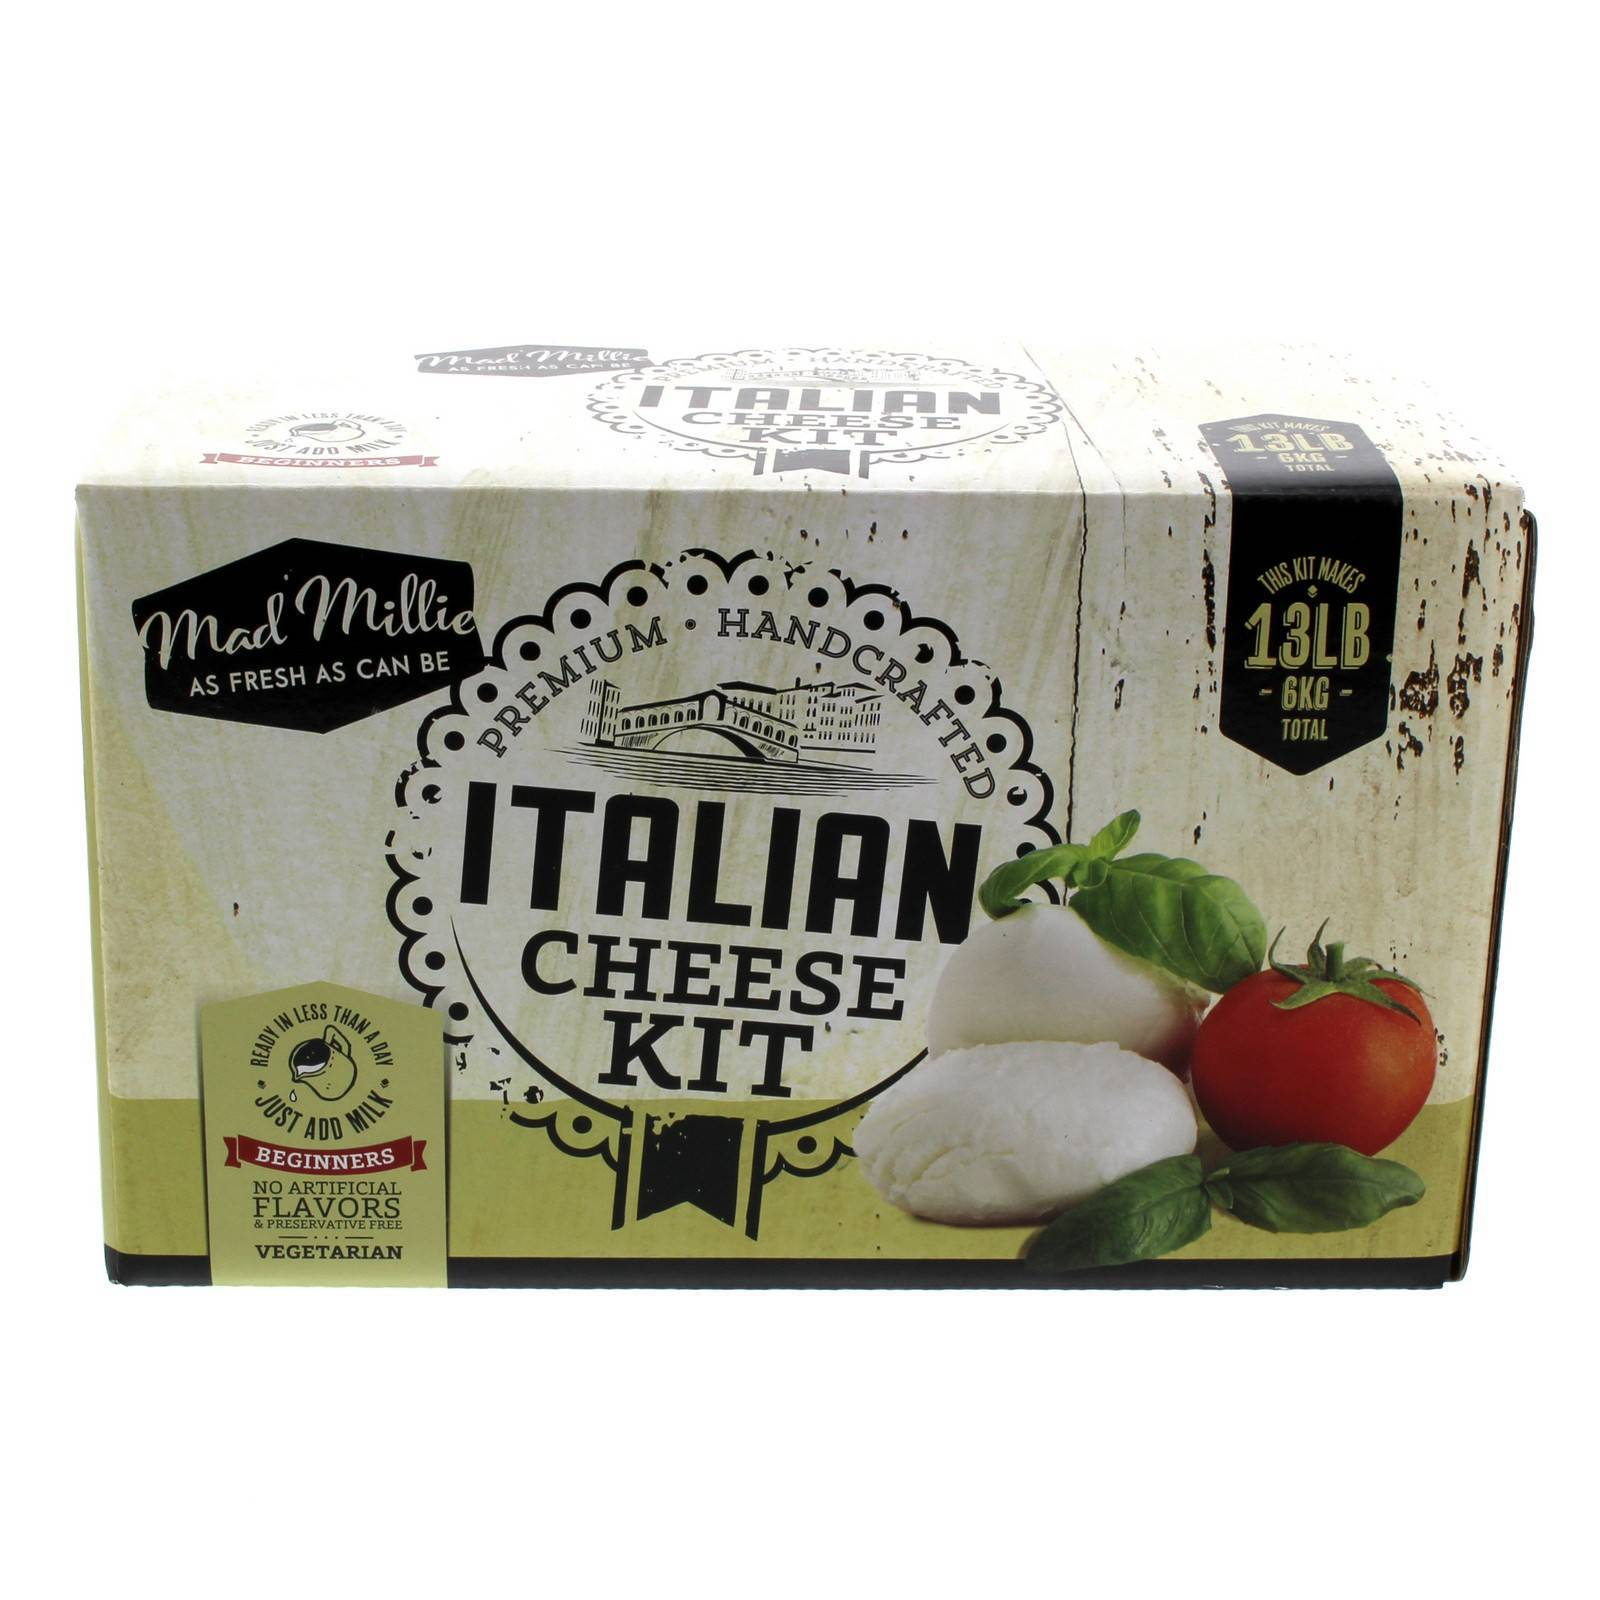 Mad Millie Beginner's Italian Cheeses Kit Hancrafted No Artificial Flavours Art